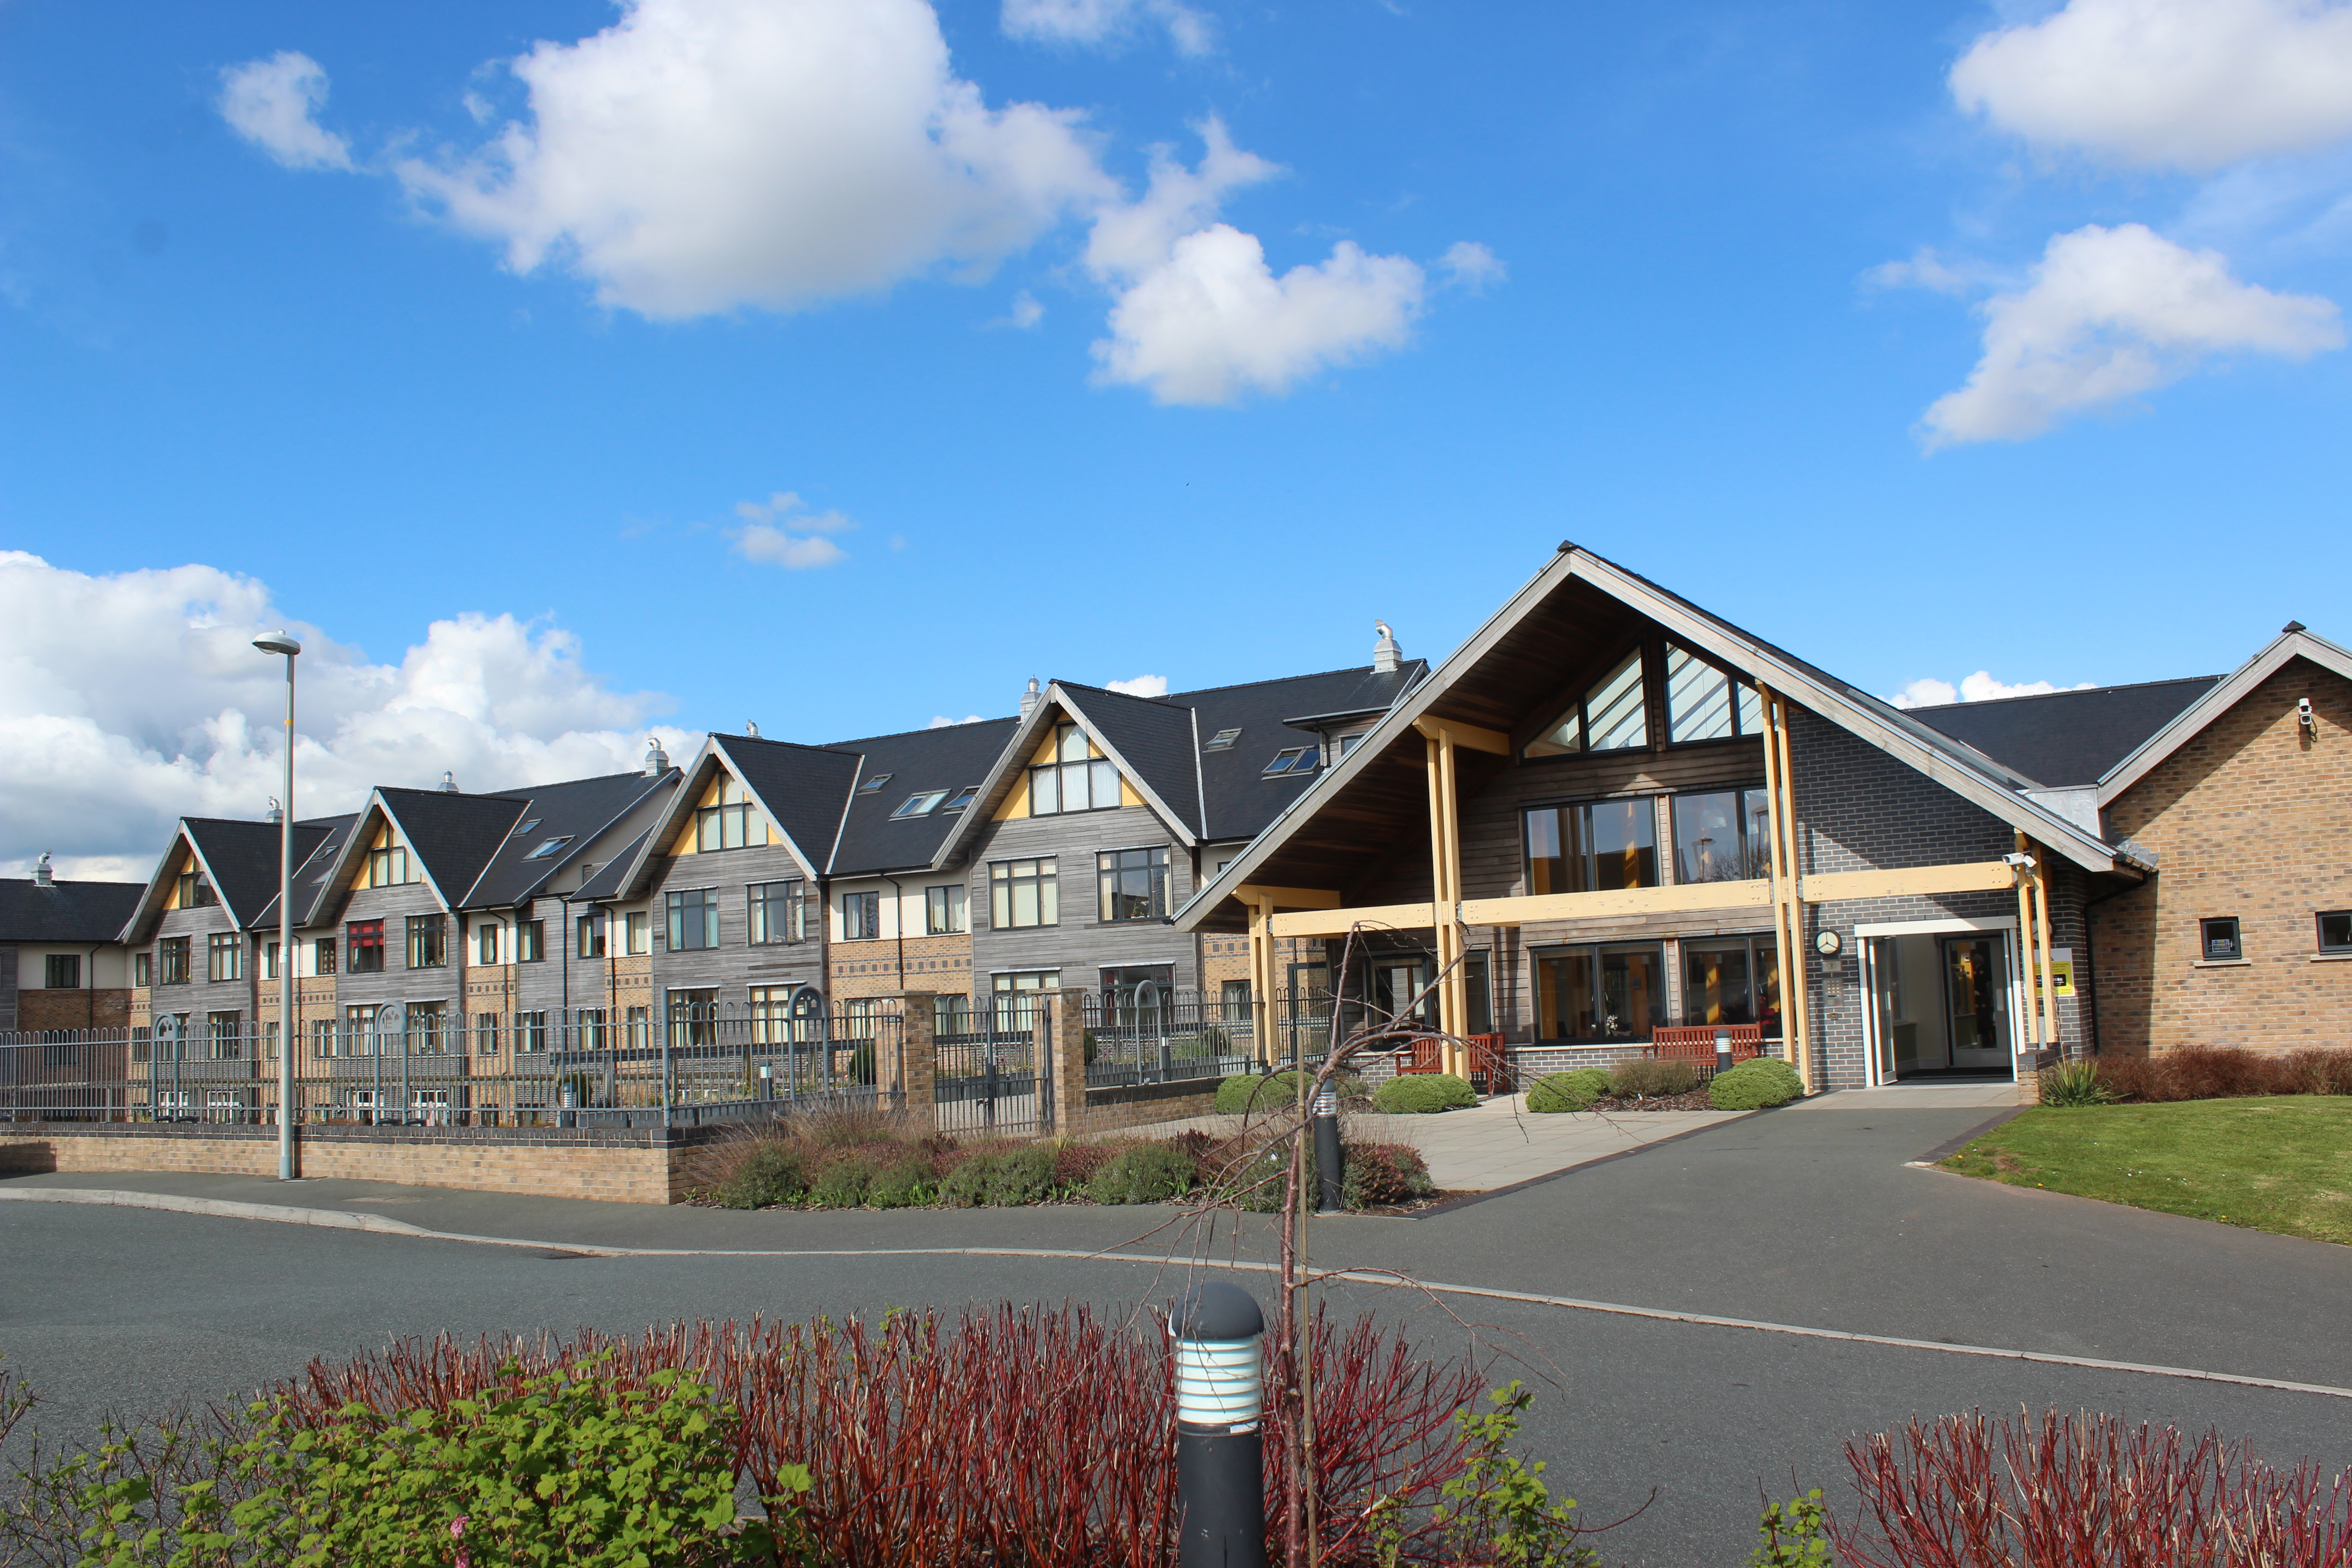 Kensington Court is a state-of-the-art sheltered housing development